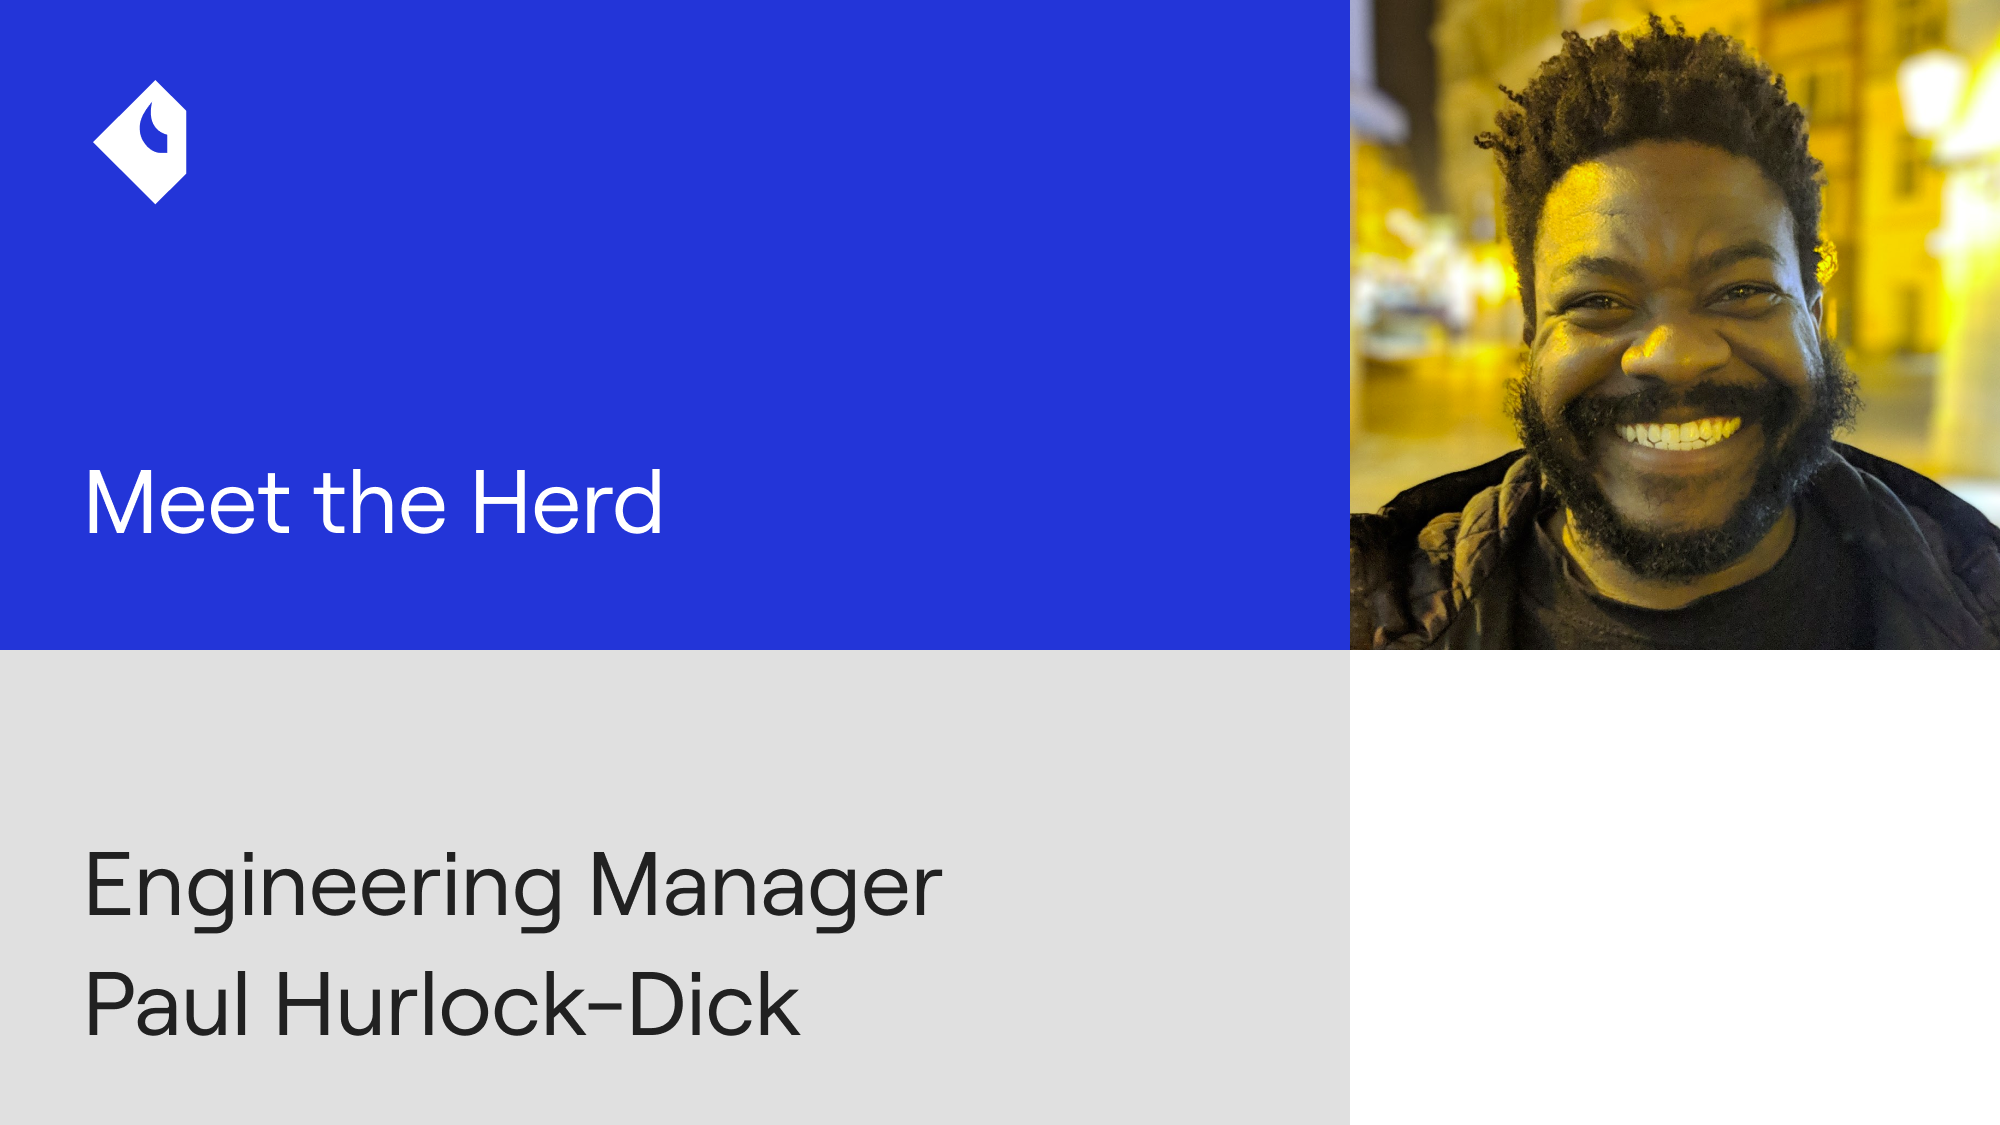 Meet the Herd: Engineering Manager Paul Hurlock-Dick